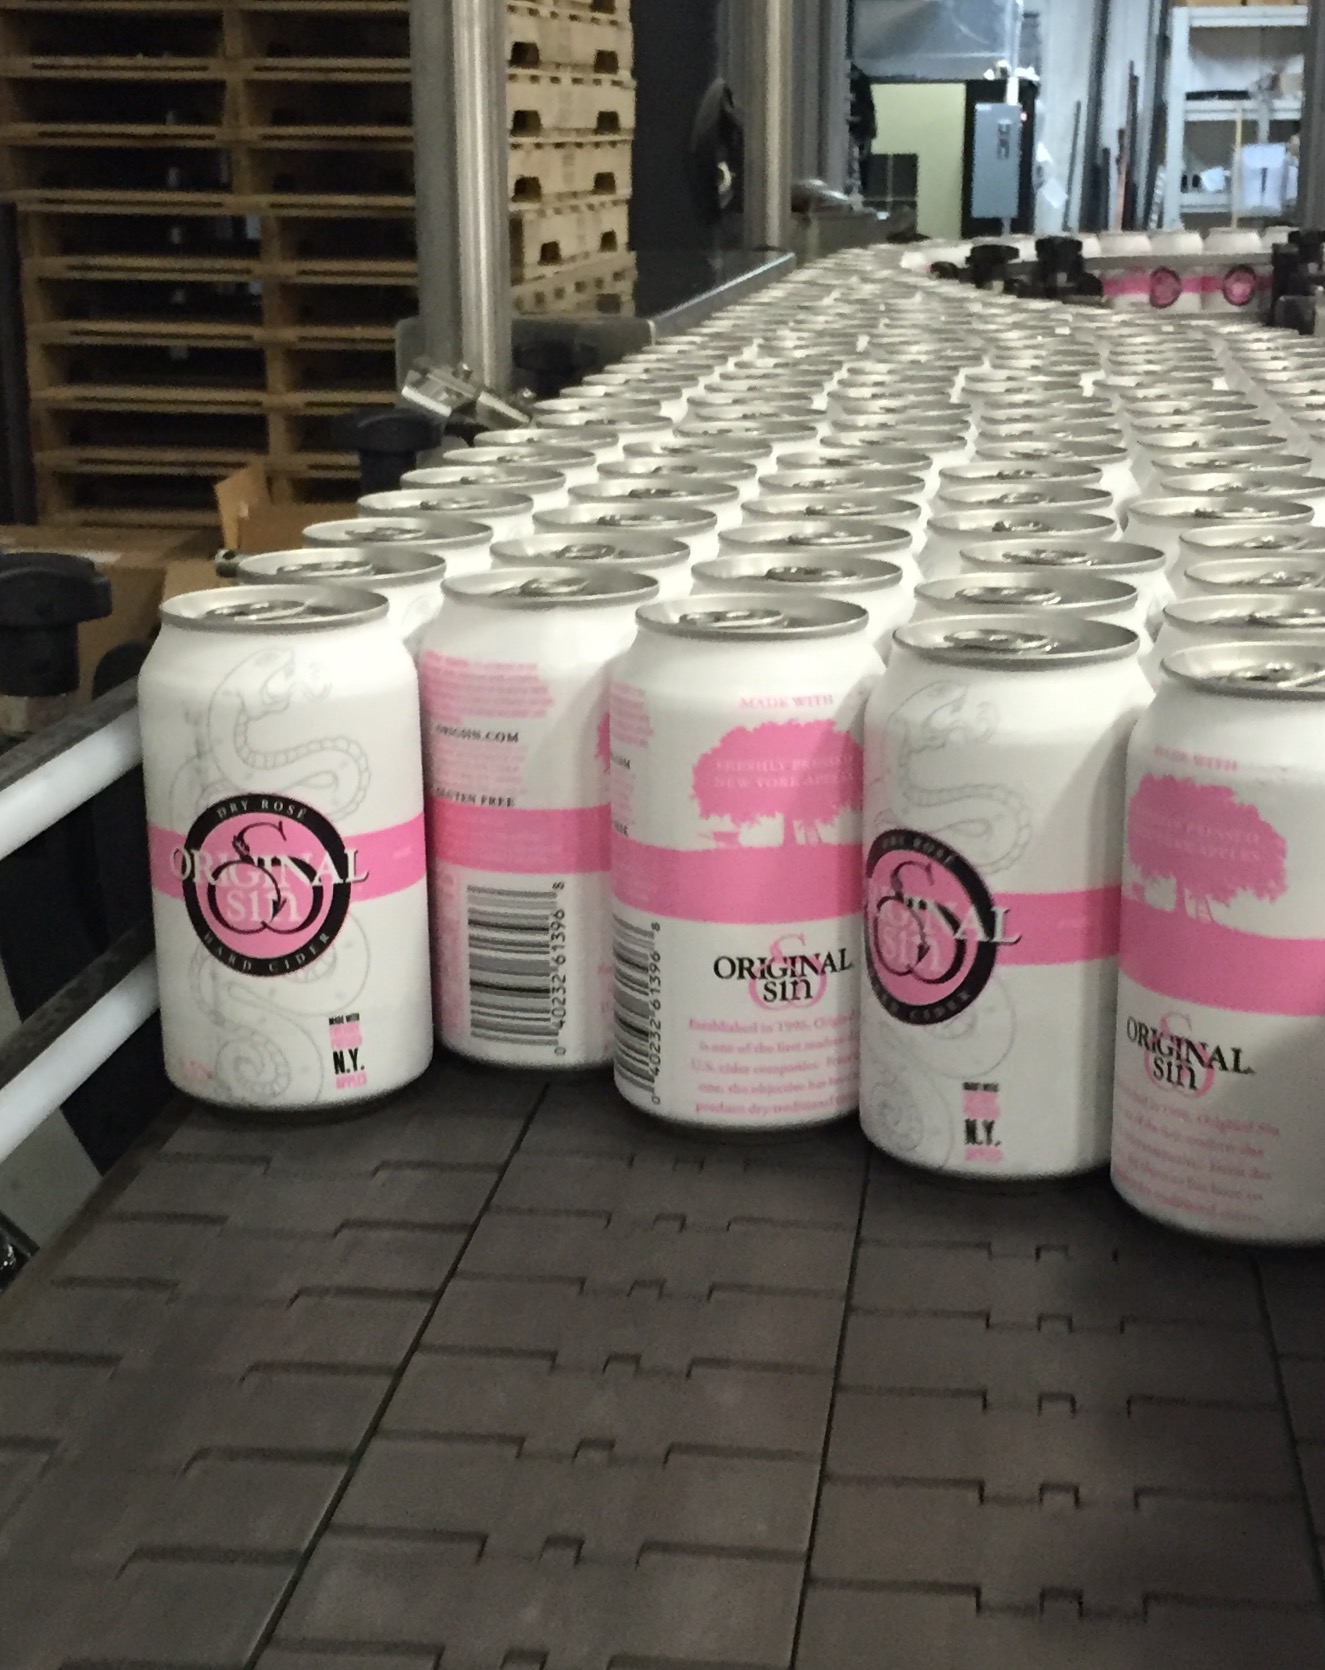 We had a busy week of production! Look for our Dry Rosé Cider 12oz cans soon. They are made with 100% freshly pressed New York apples!!